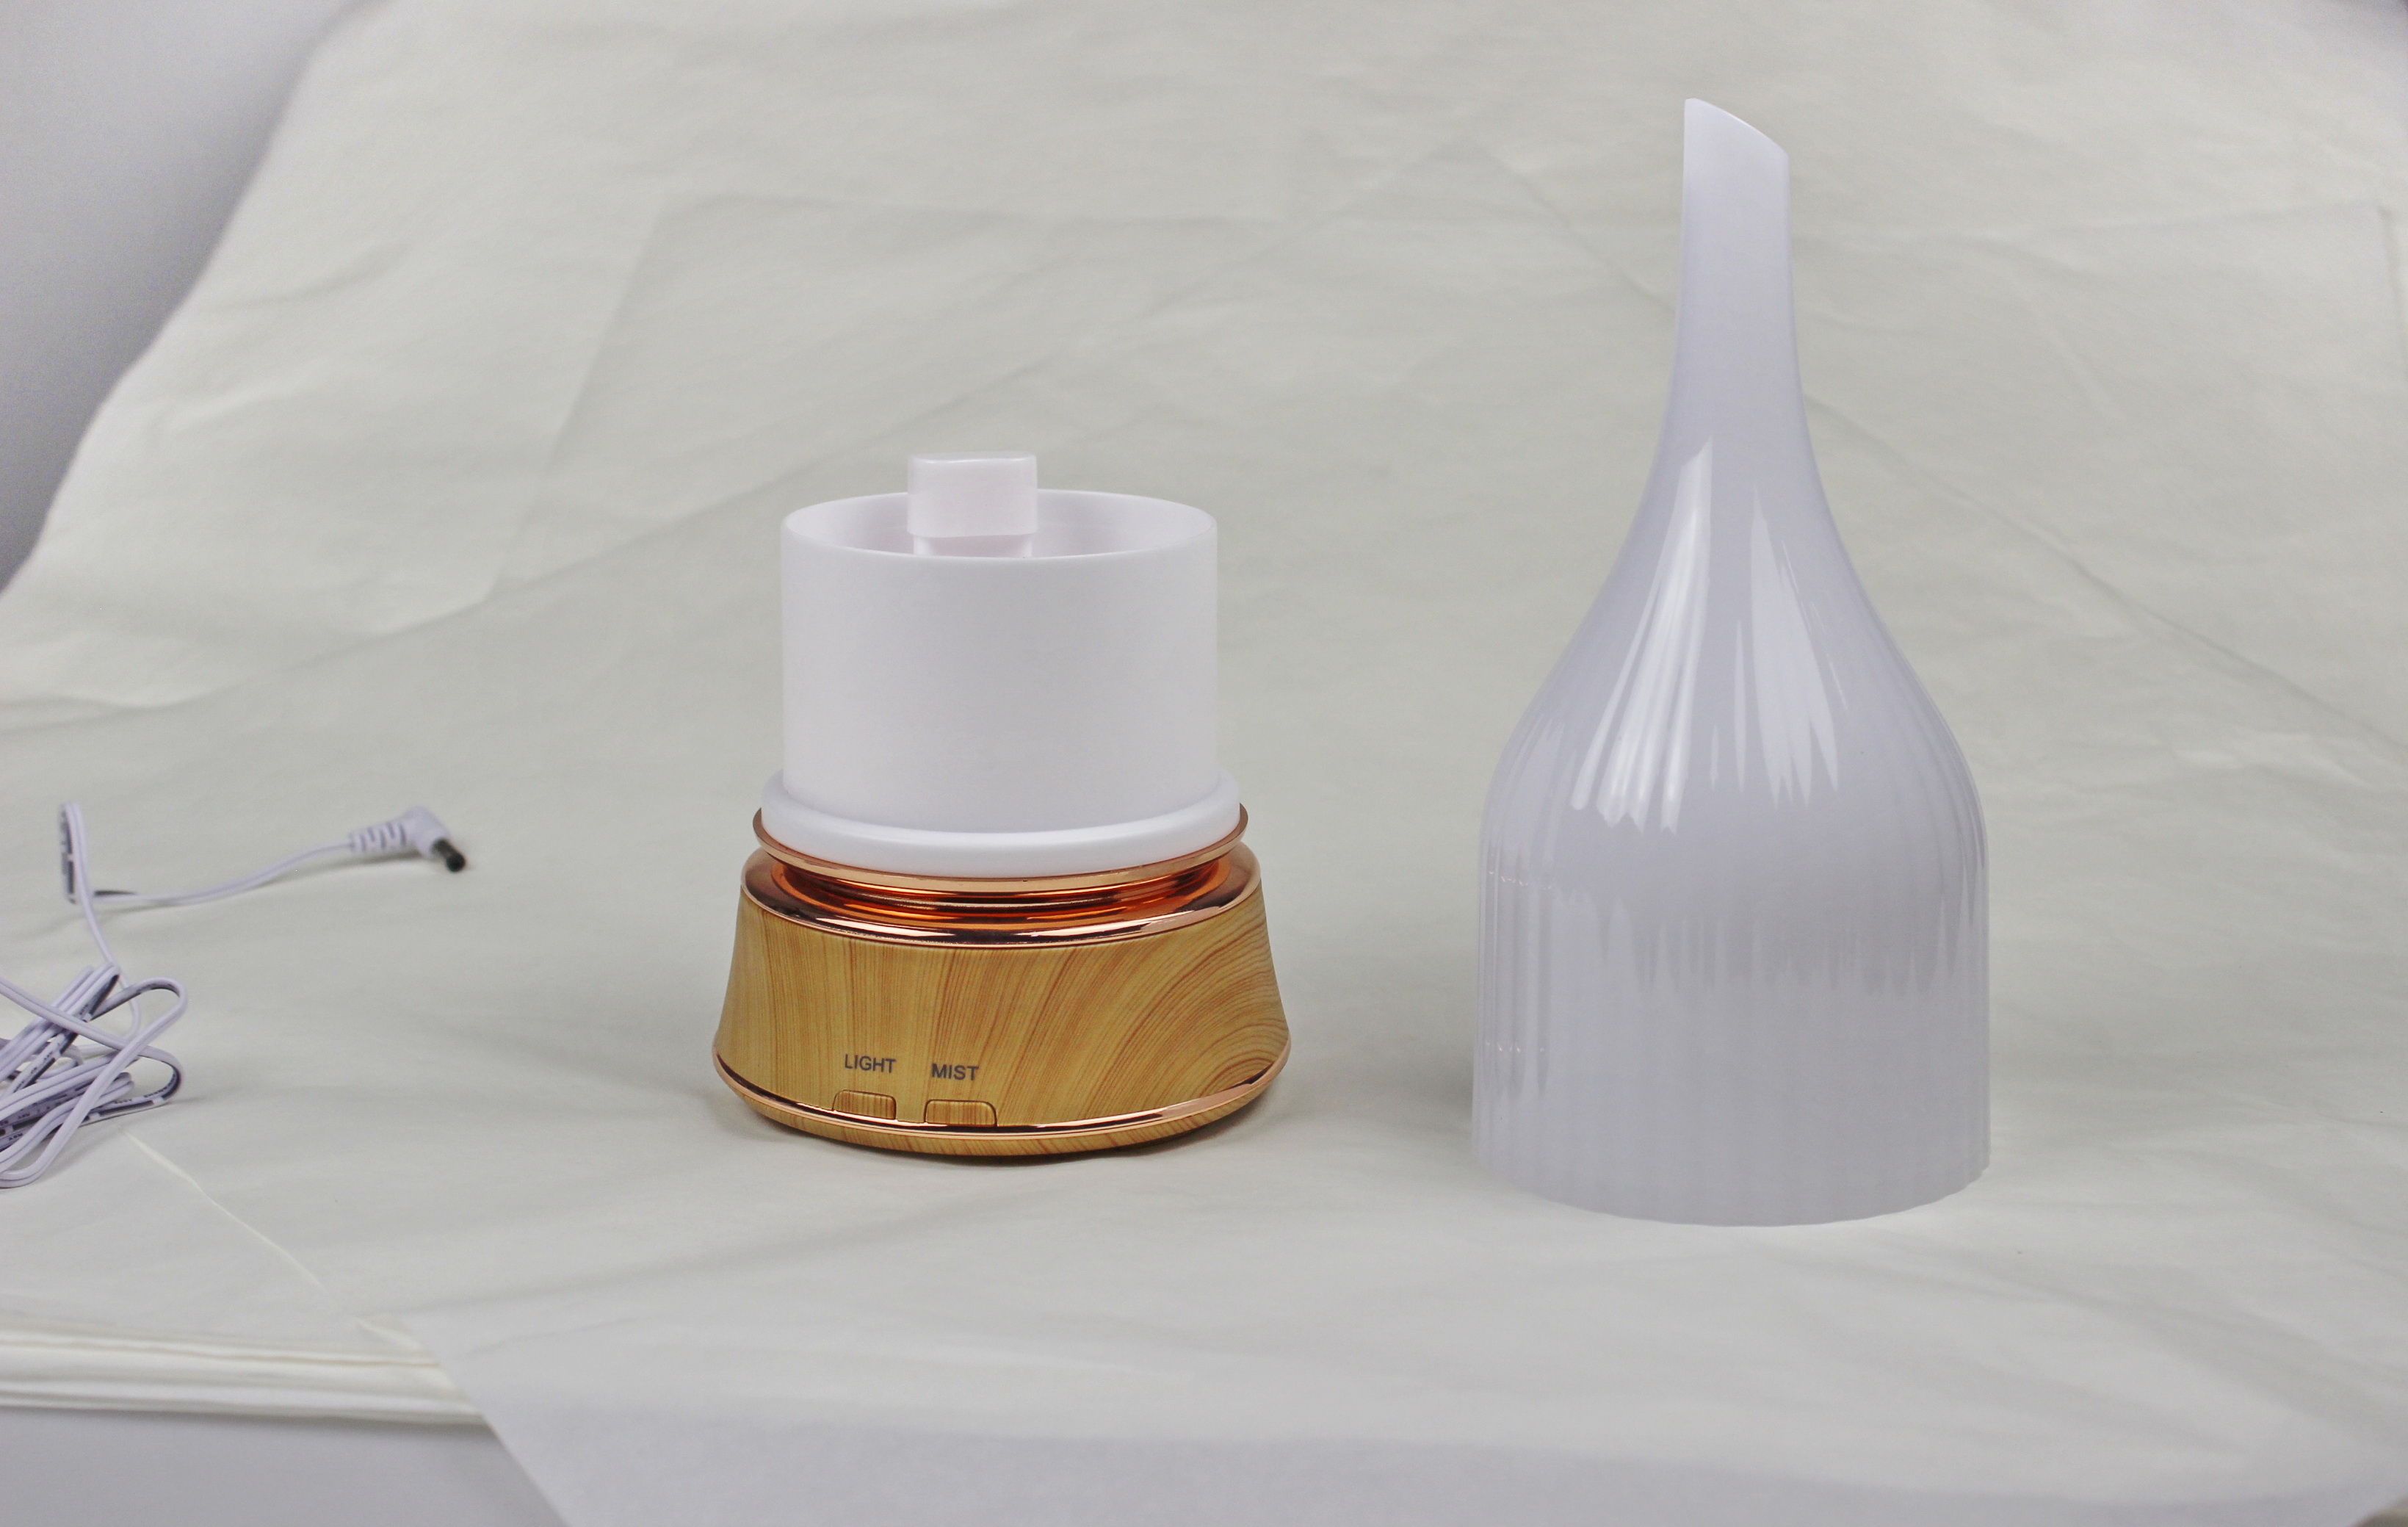 Wood Grain Aroma Diffuser for Office